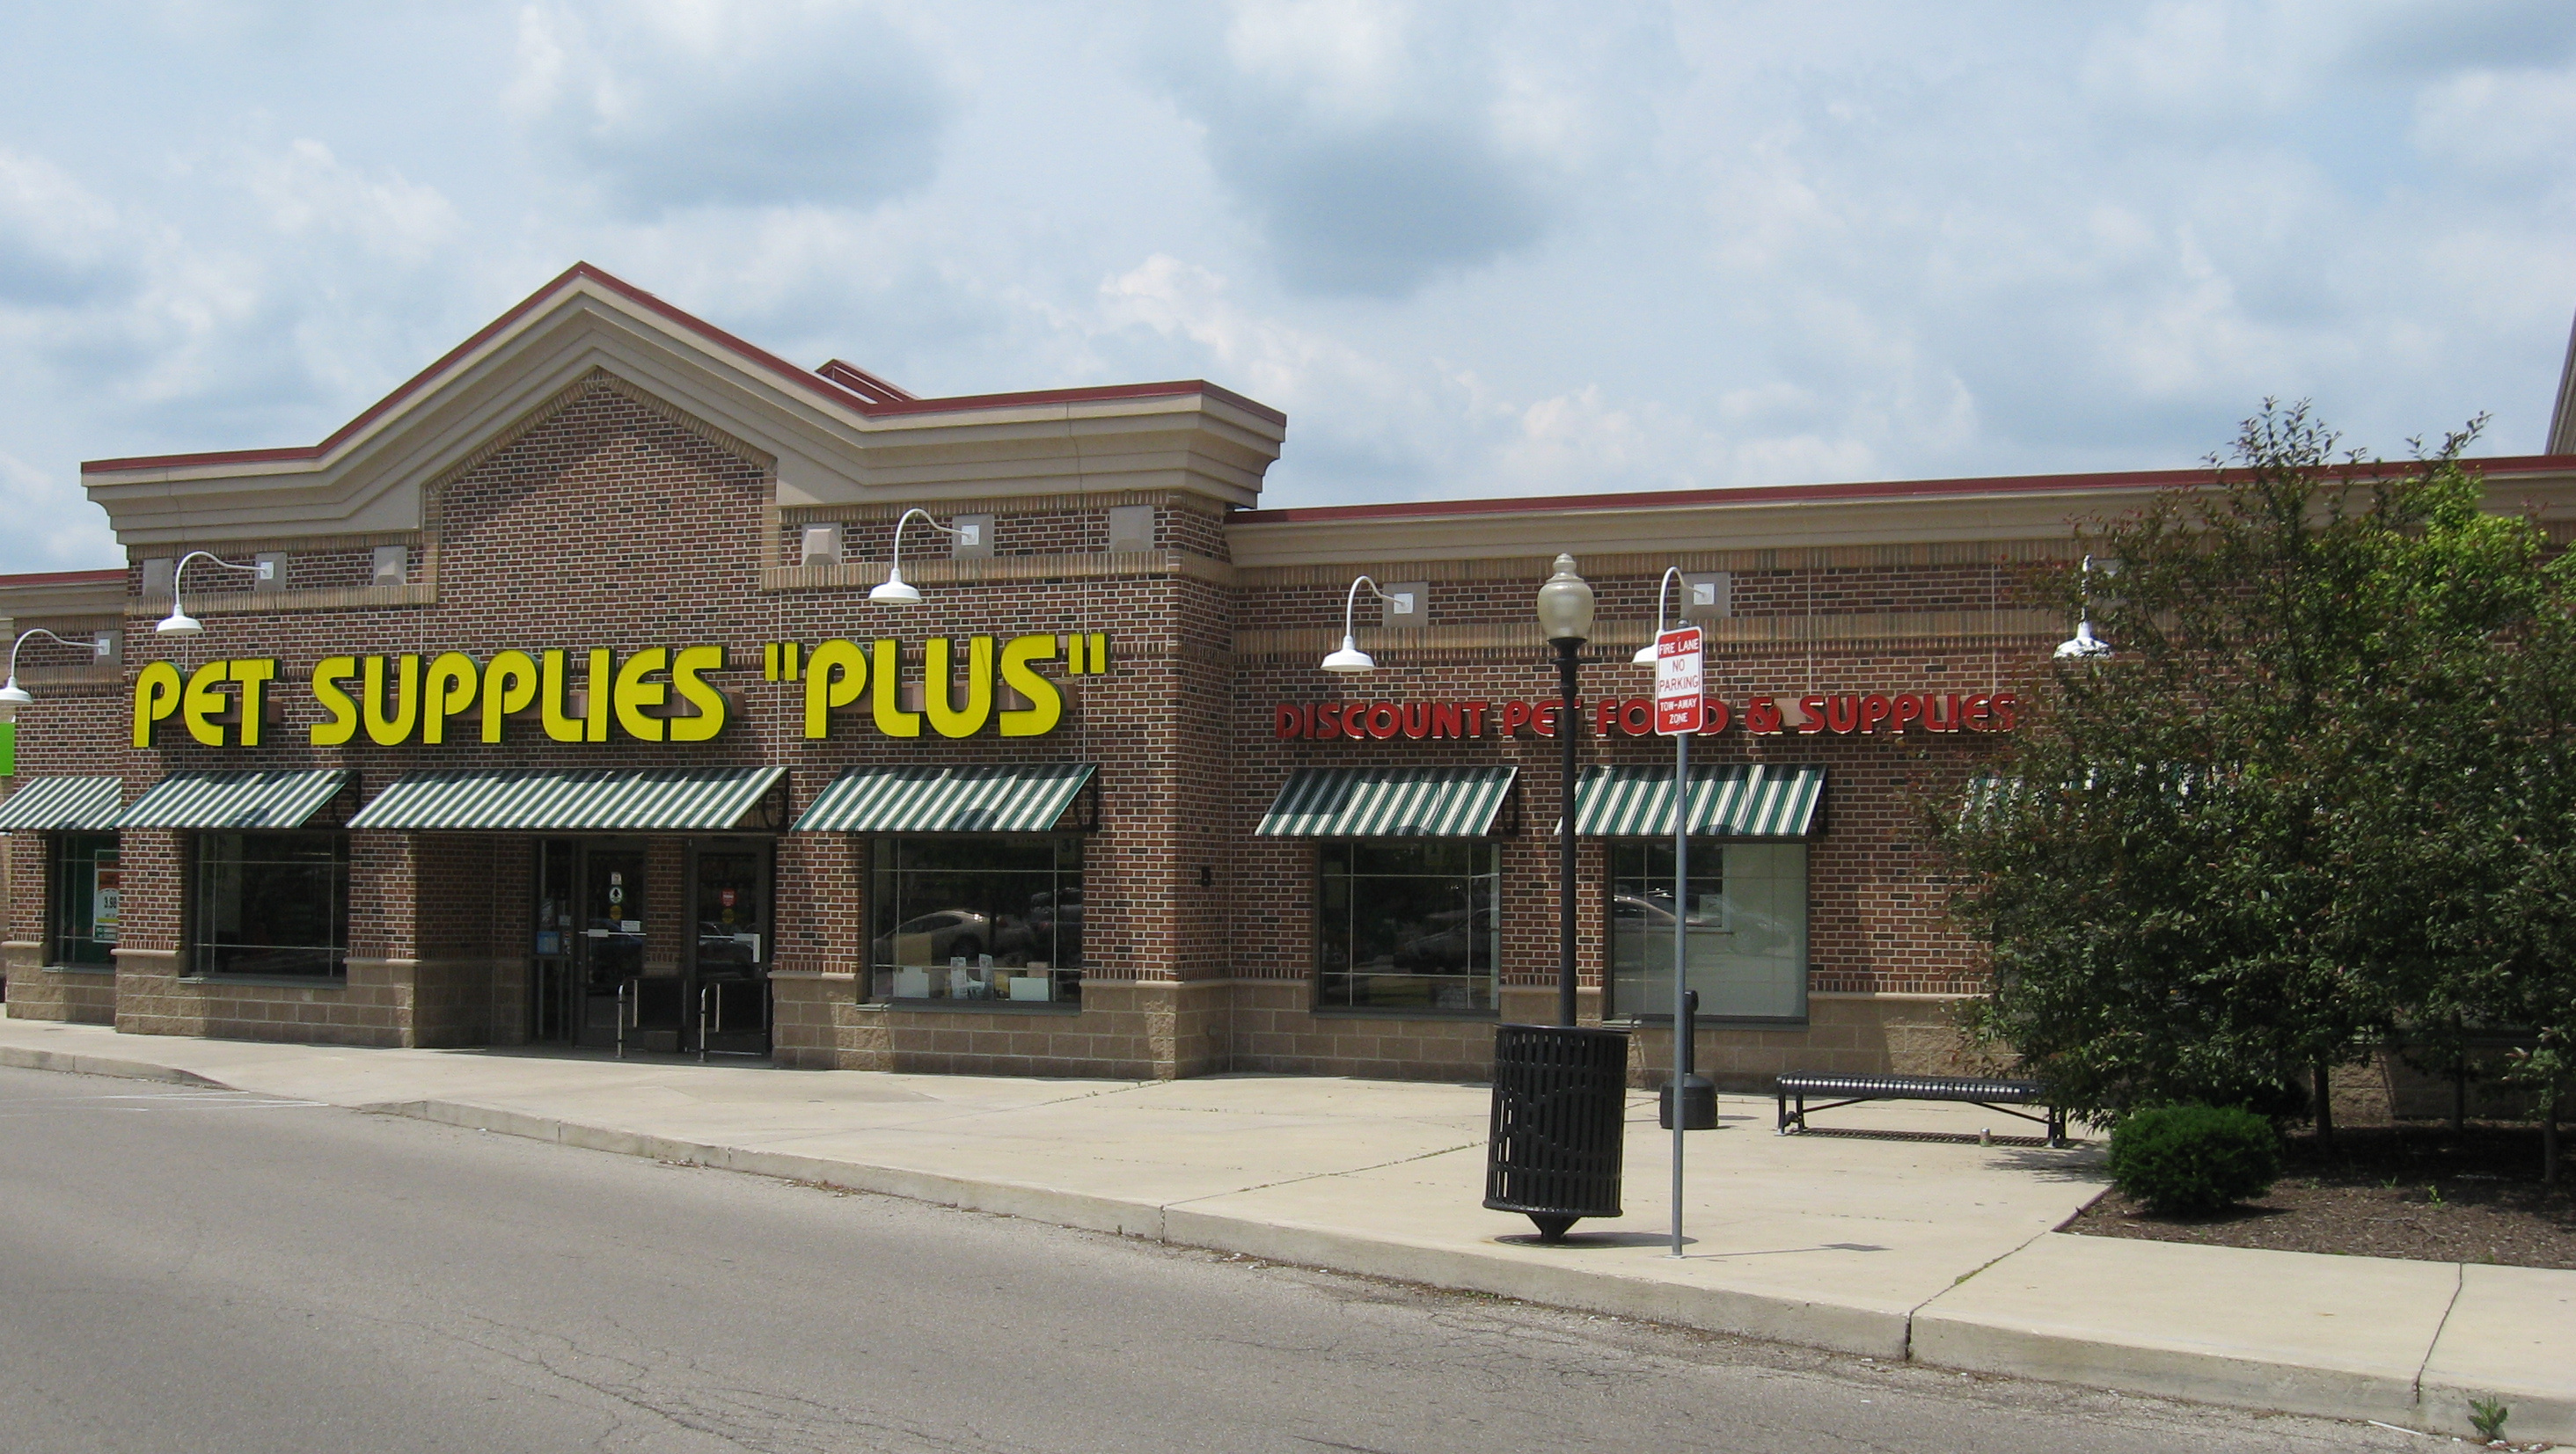 Pet Supplies Plus - Wikipedia